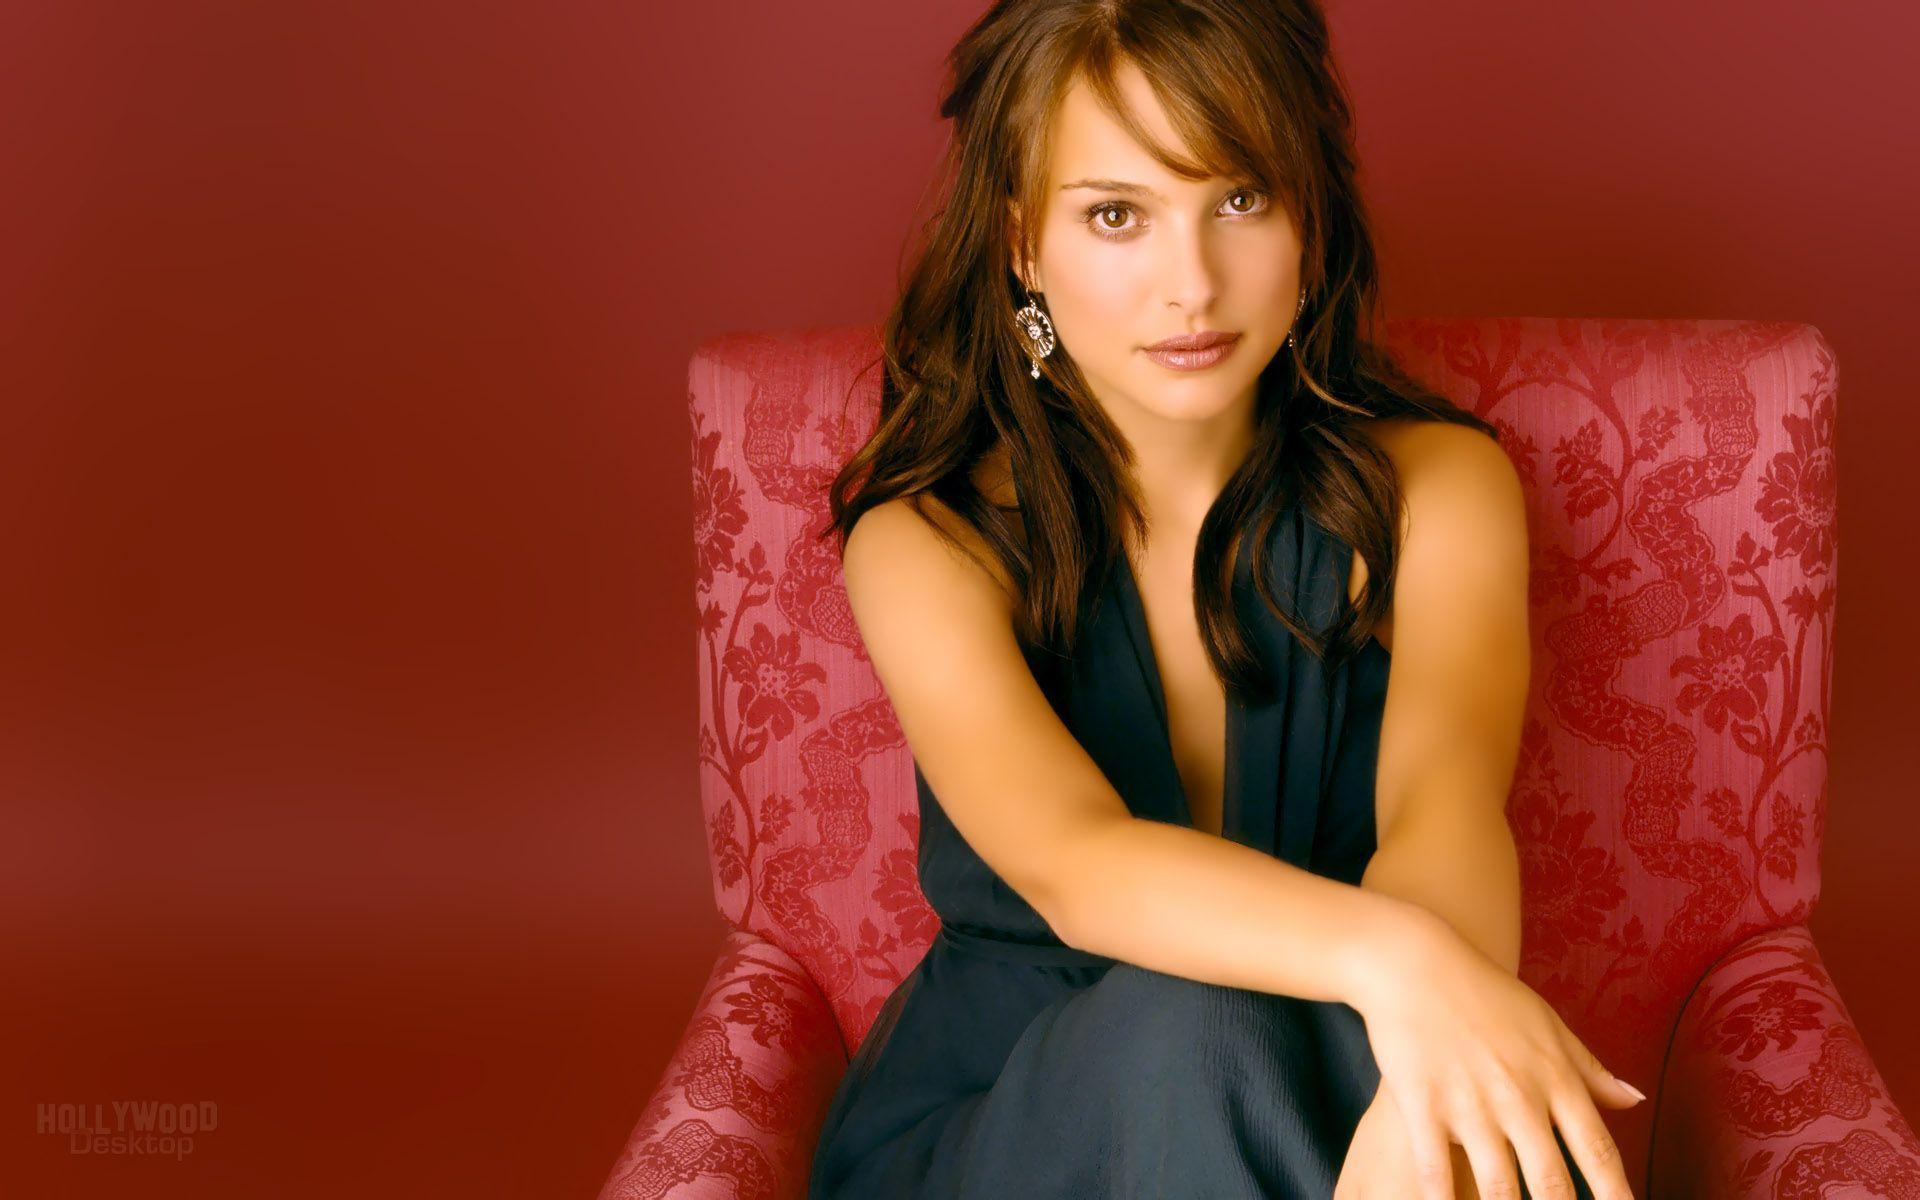 Natalie portman 001 wallpapers Desktop HD Wallpaper|1080p ...